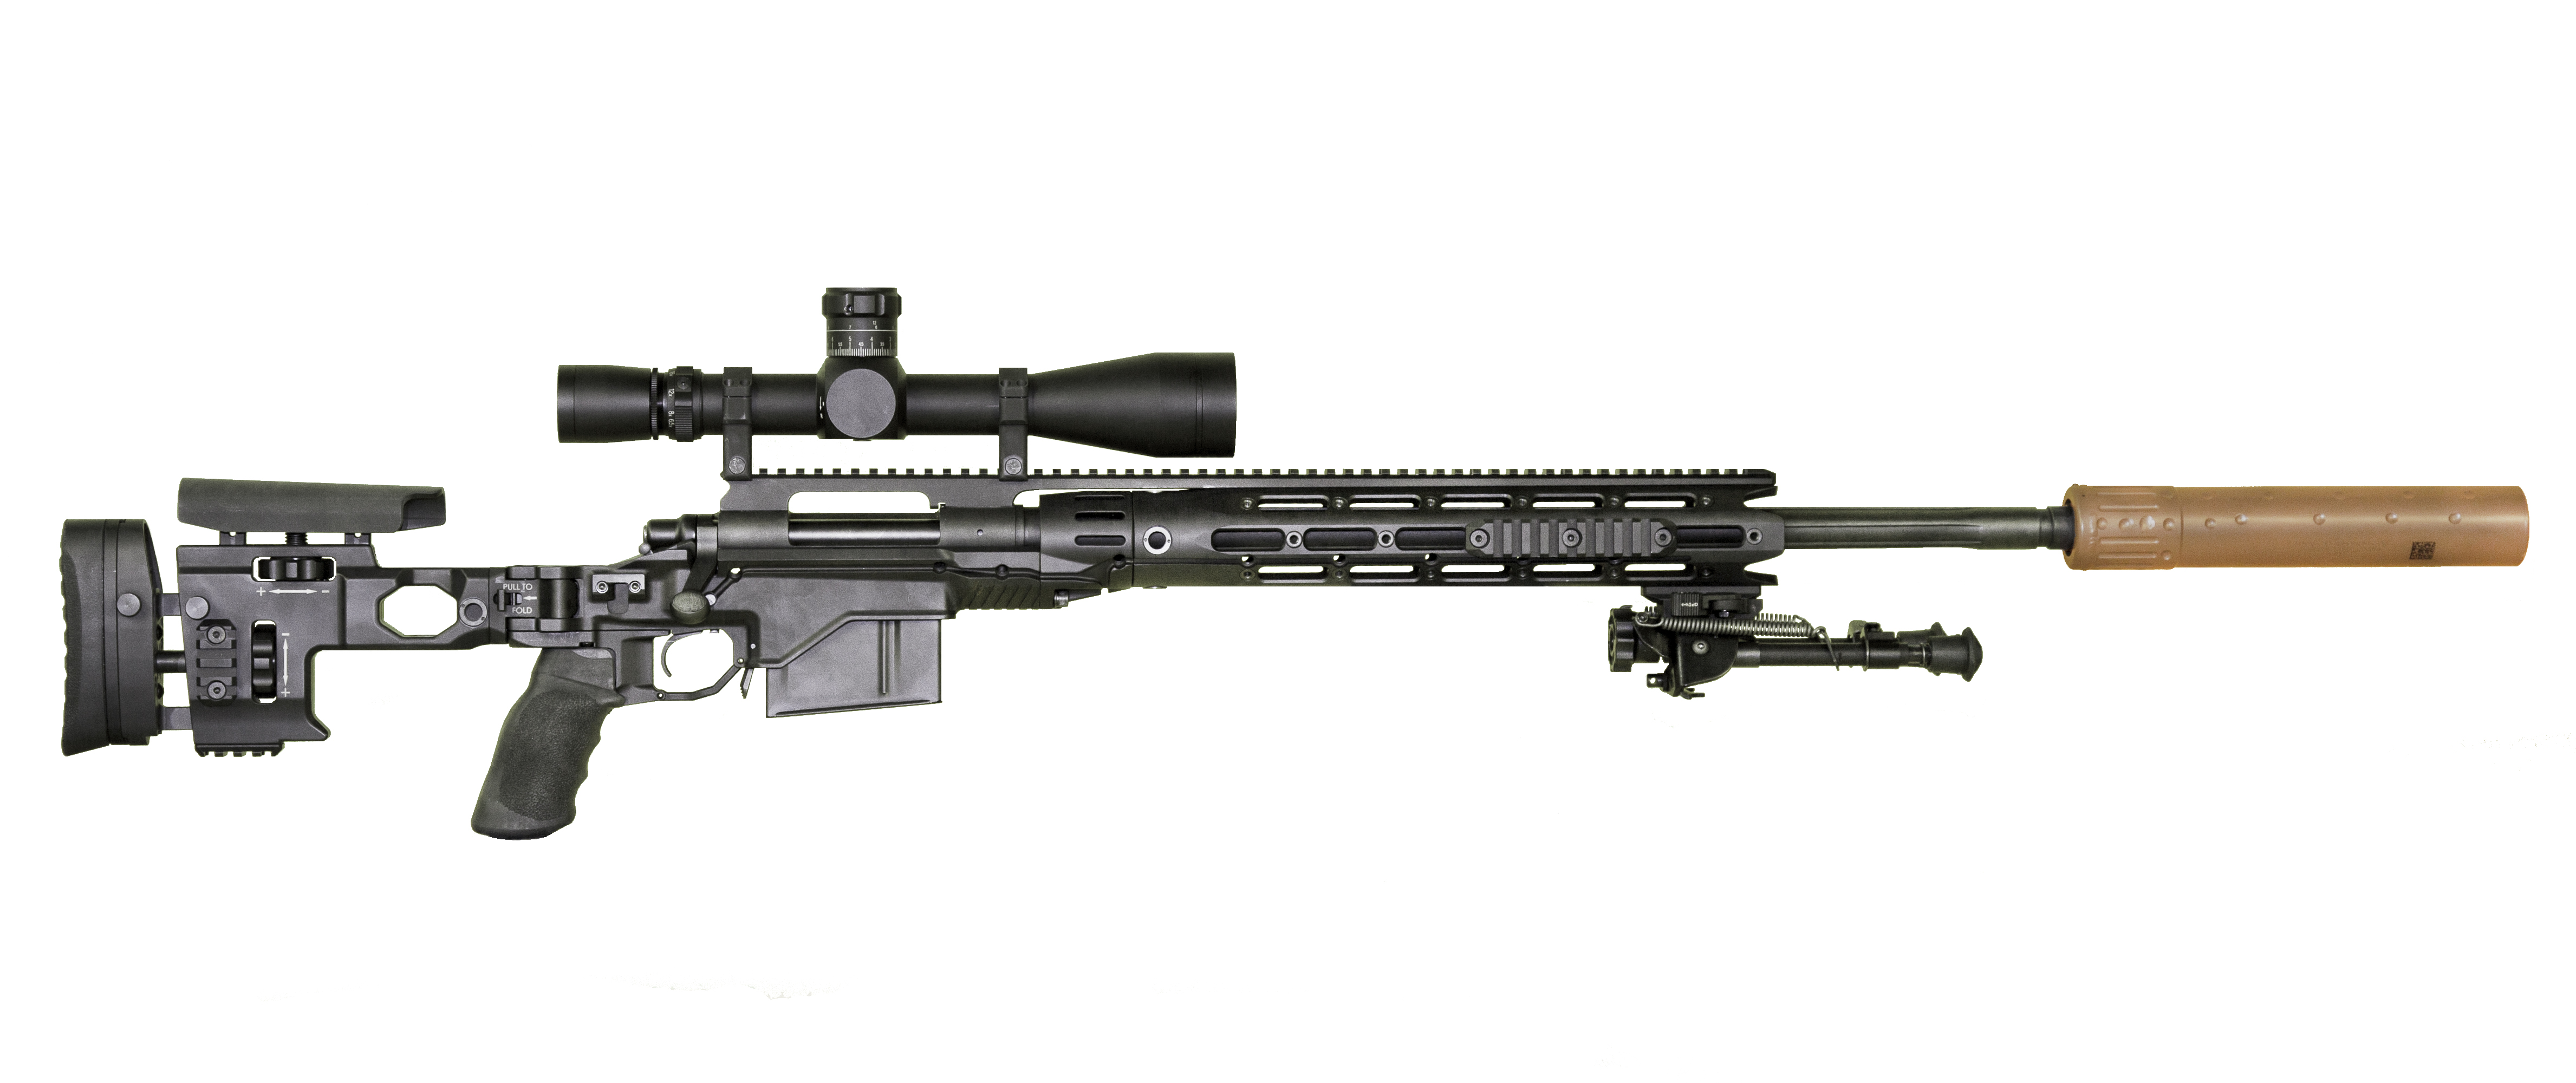 M24 Sniper Rifle In Afghanistan